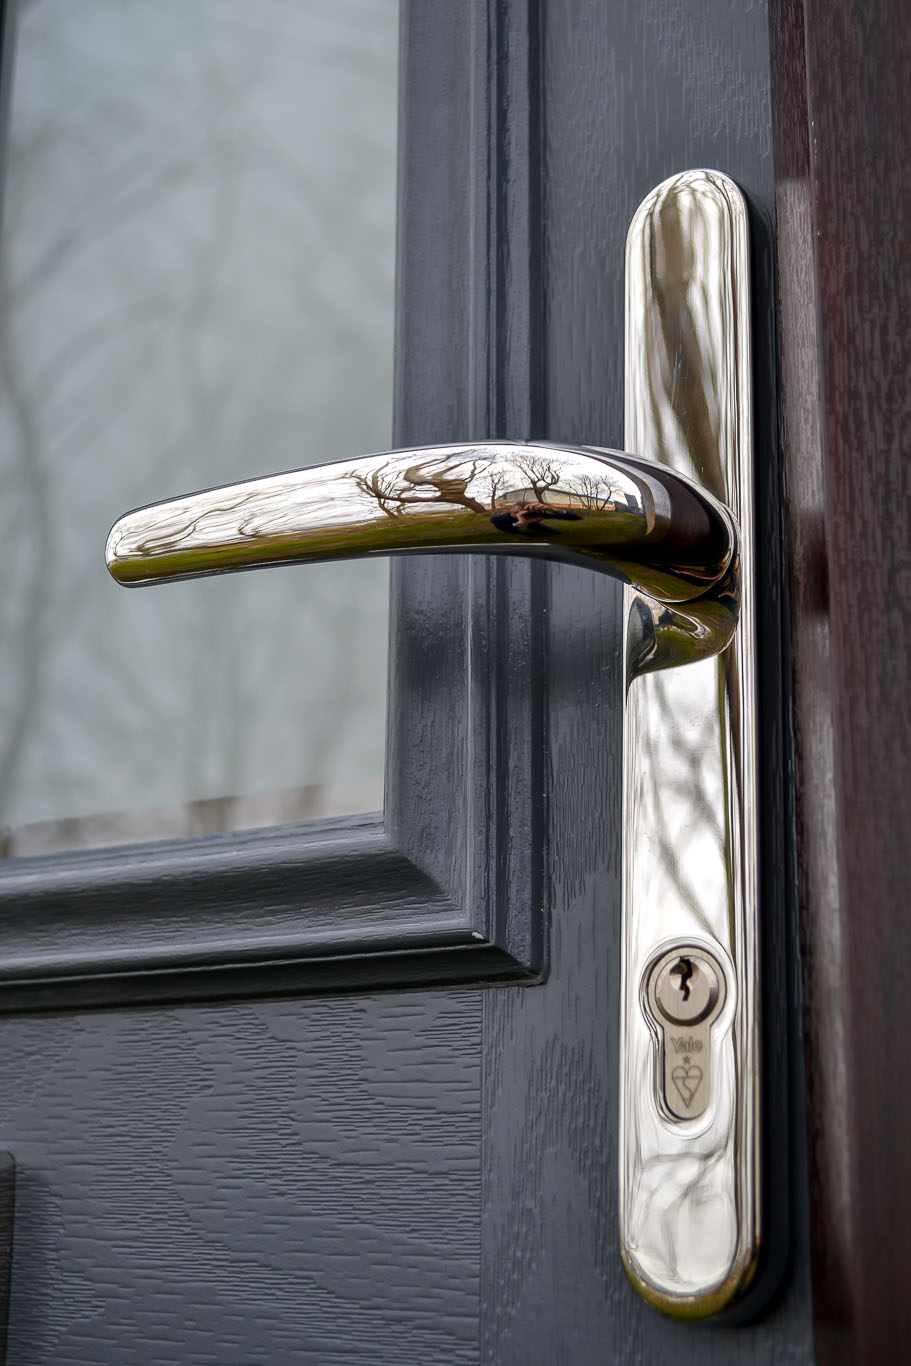 handle close up.jpg